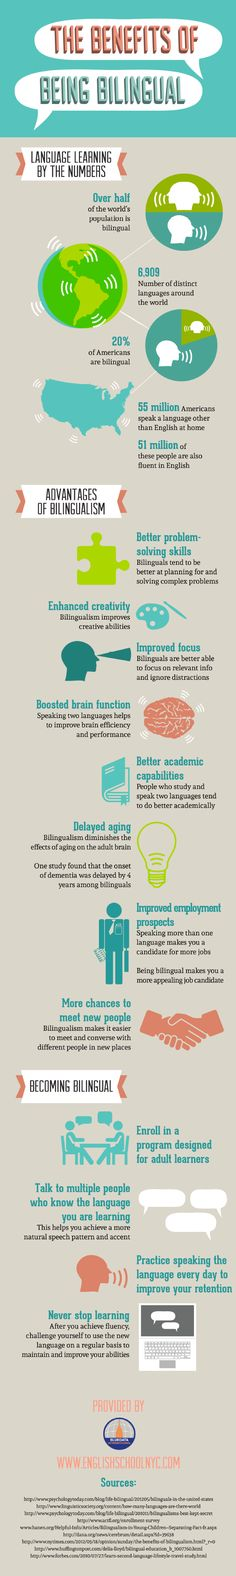 This poster explains that being bilingual awards people with better problem-solving skills, enhanced creativity, improved focus, boosted brain function, better academic capabilities, delayed aging, improved employment prospects, and more chances to meet new people. Marcela